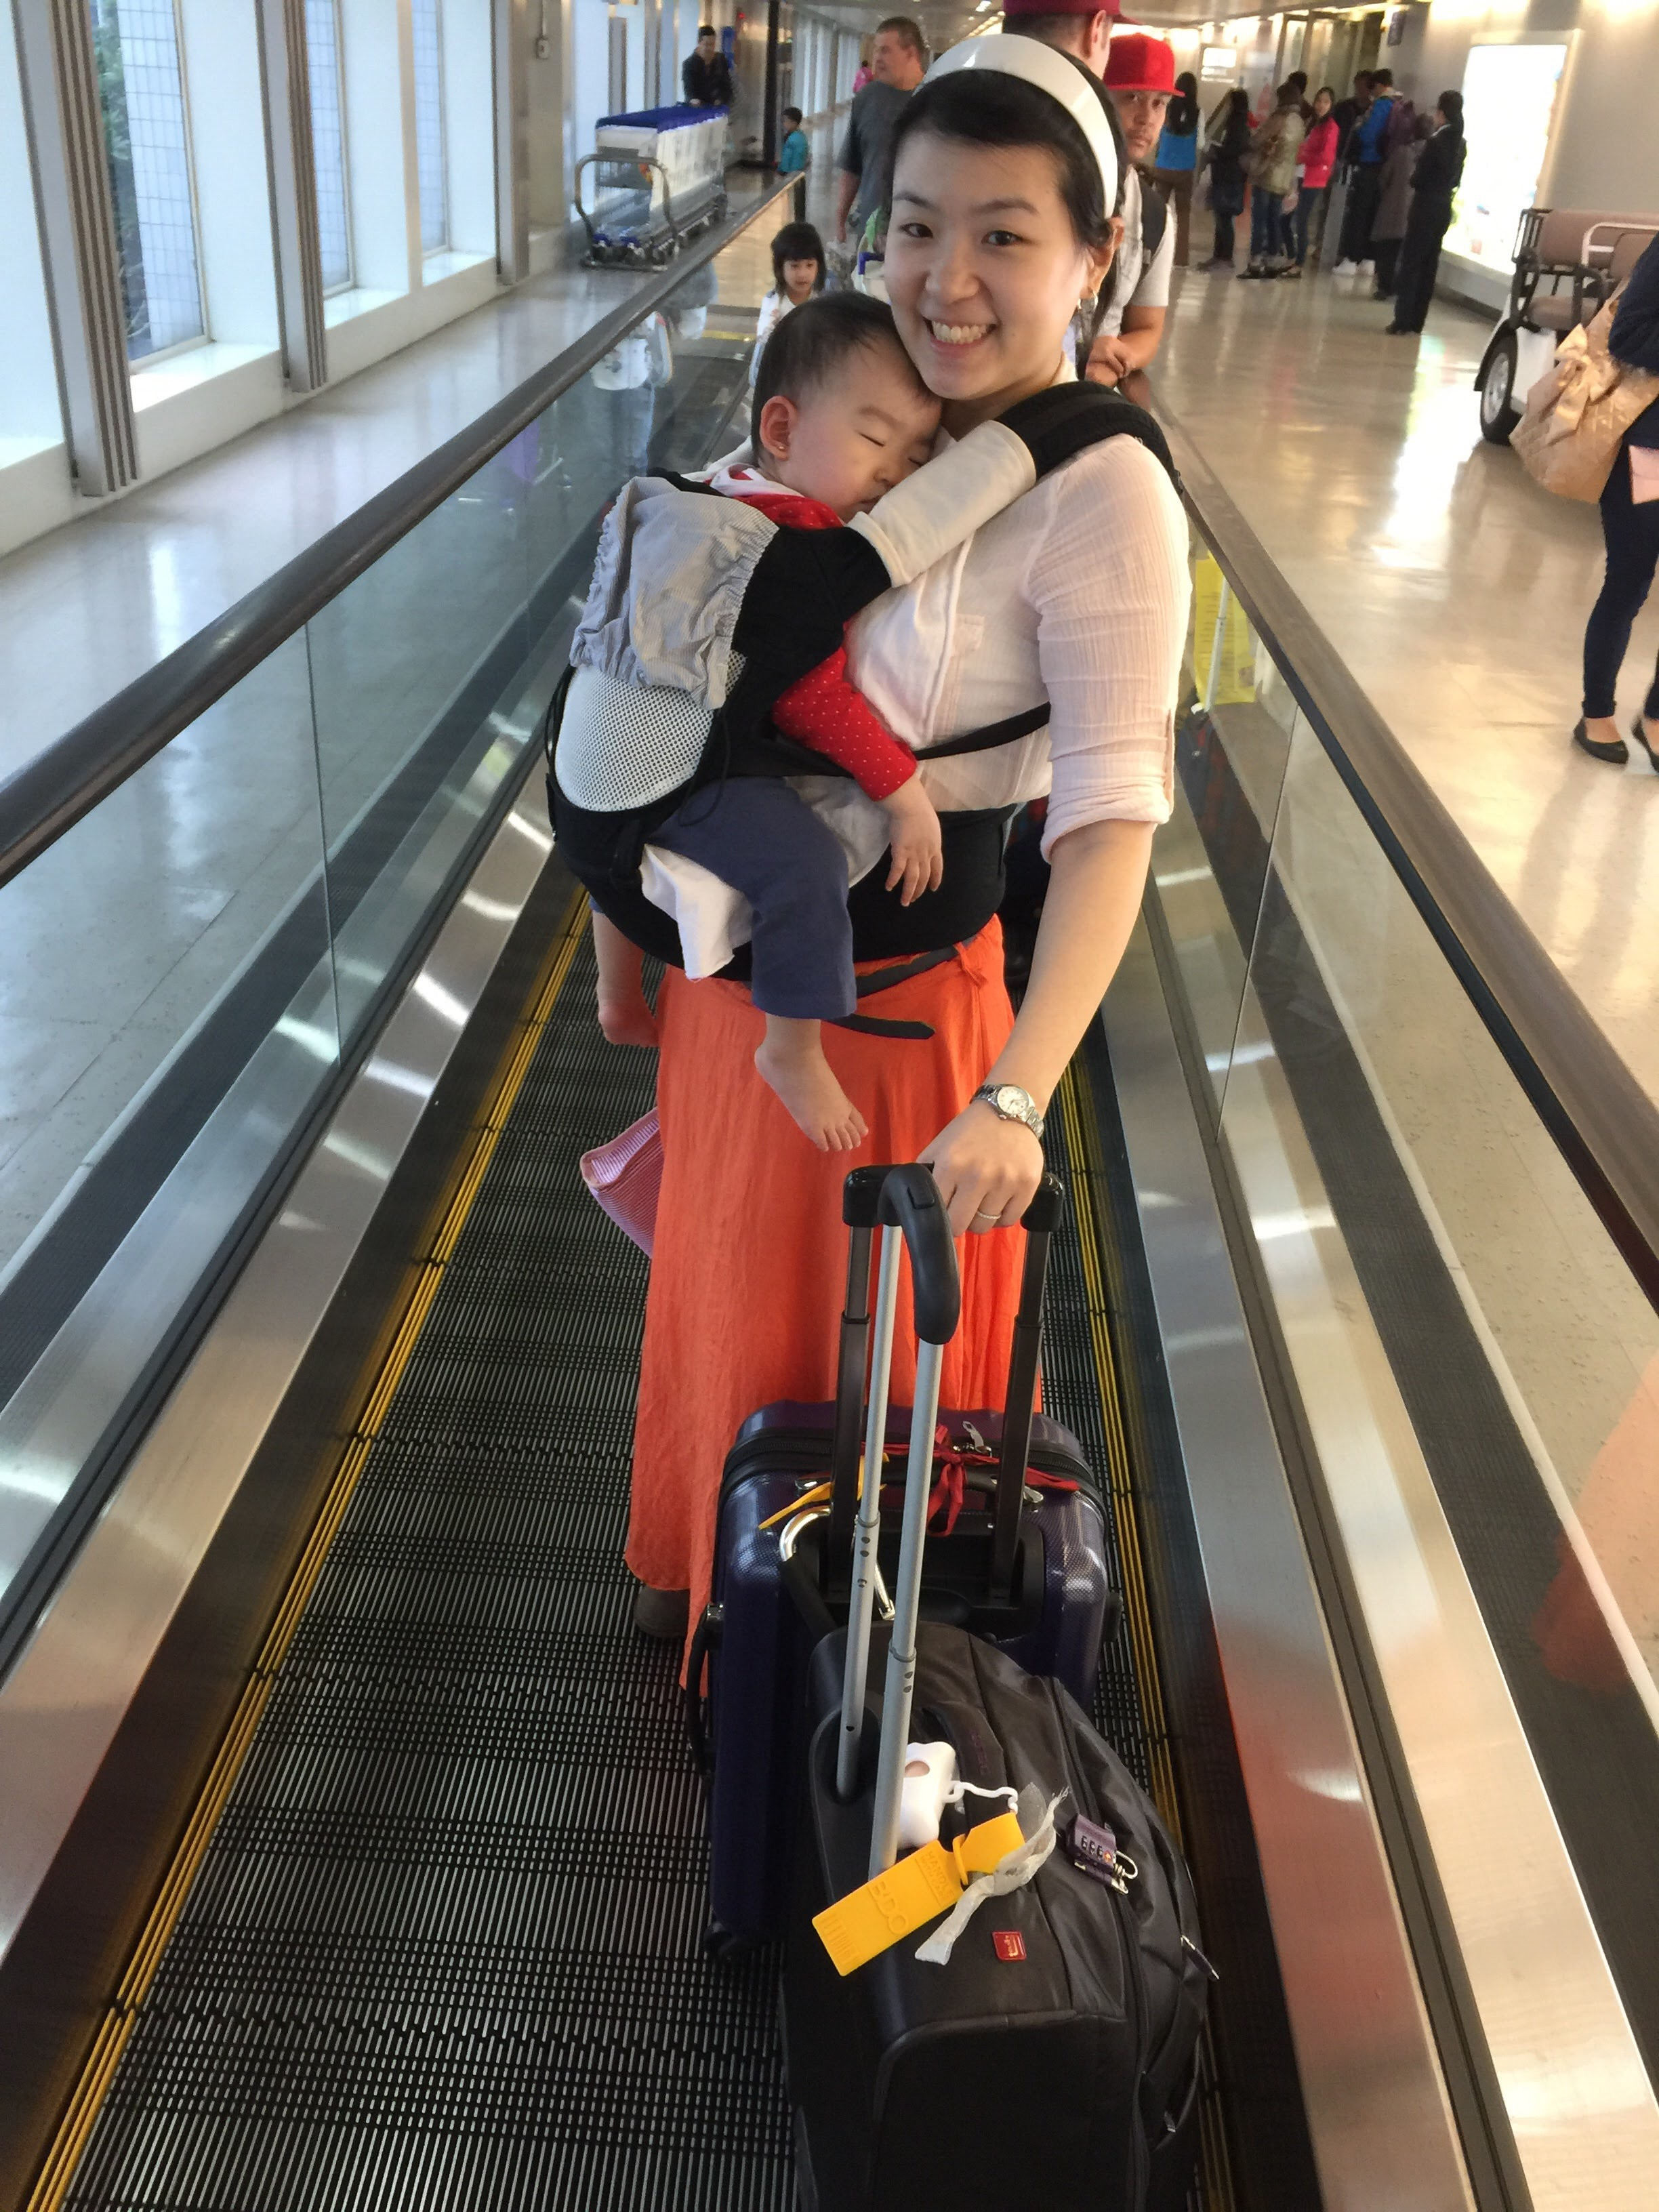 Baby carrying when traveling is the best